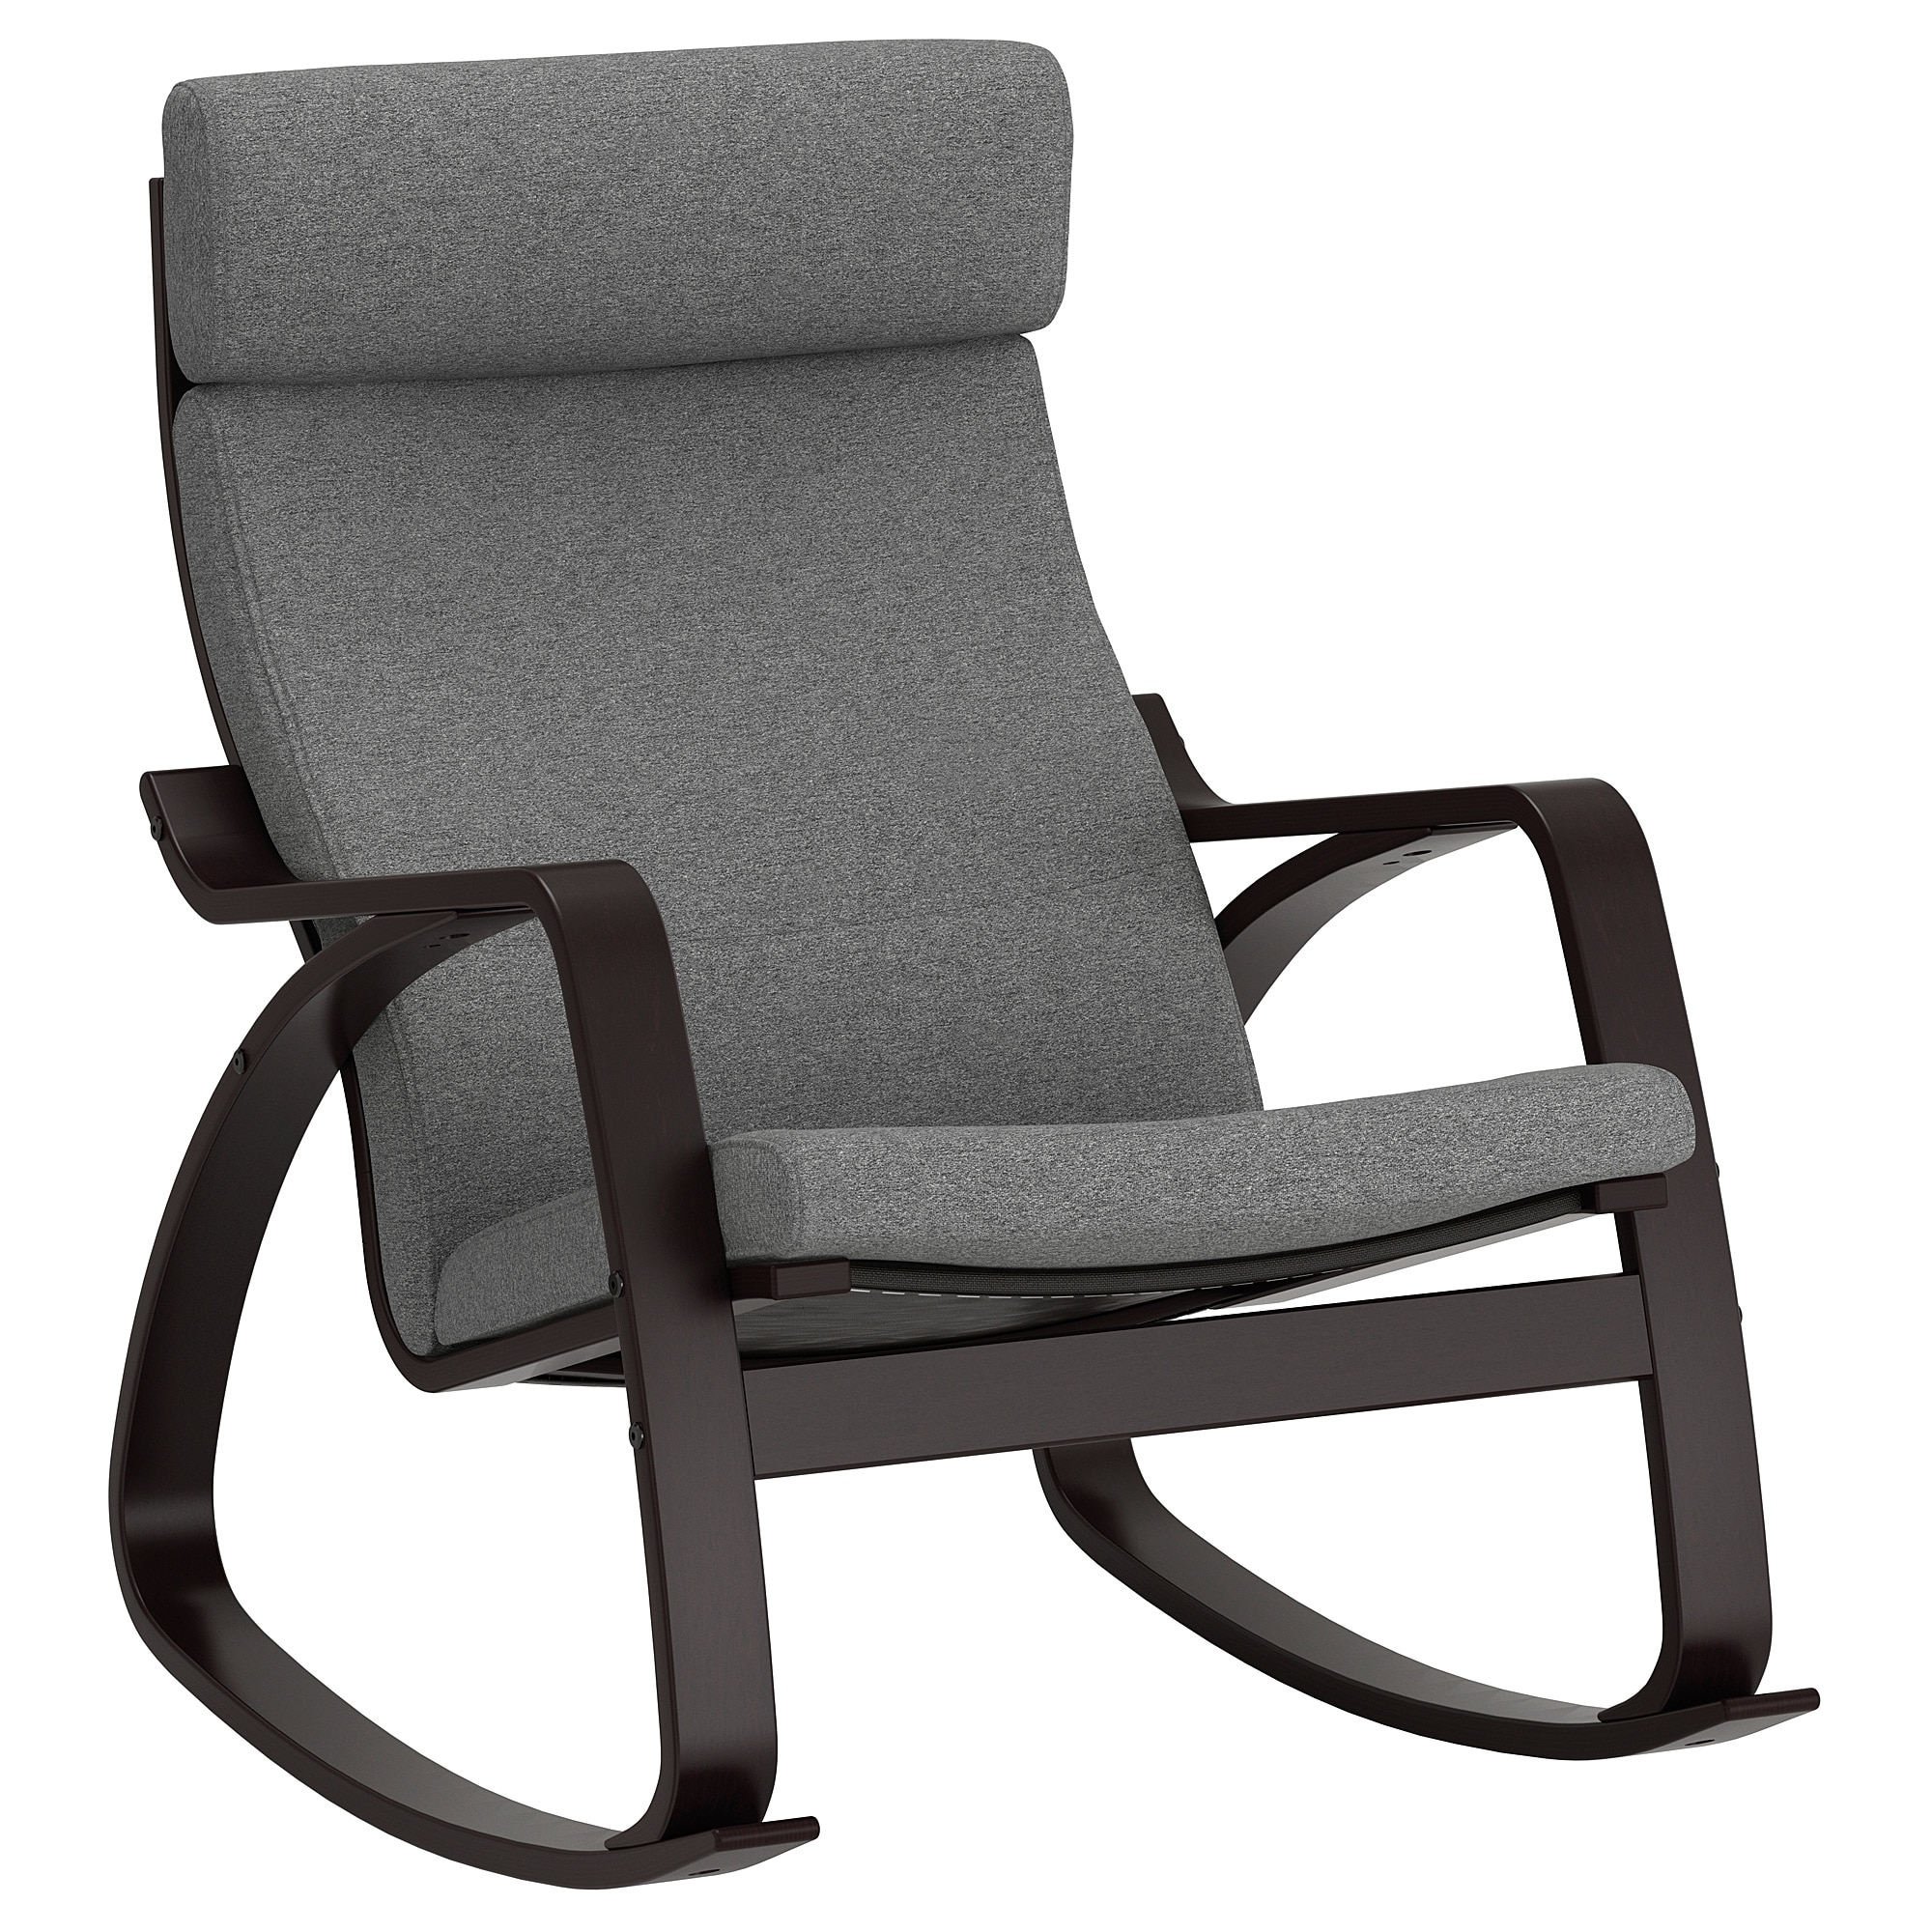 ikea white rocking chair hammock stand diy 20 best ideas of chairs famous poang black brown lysed grey for